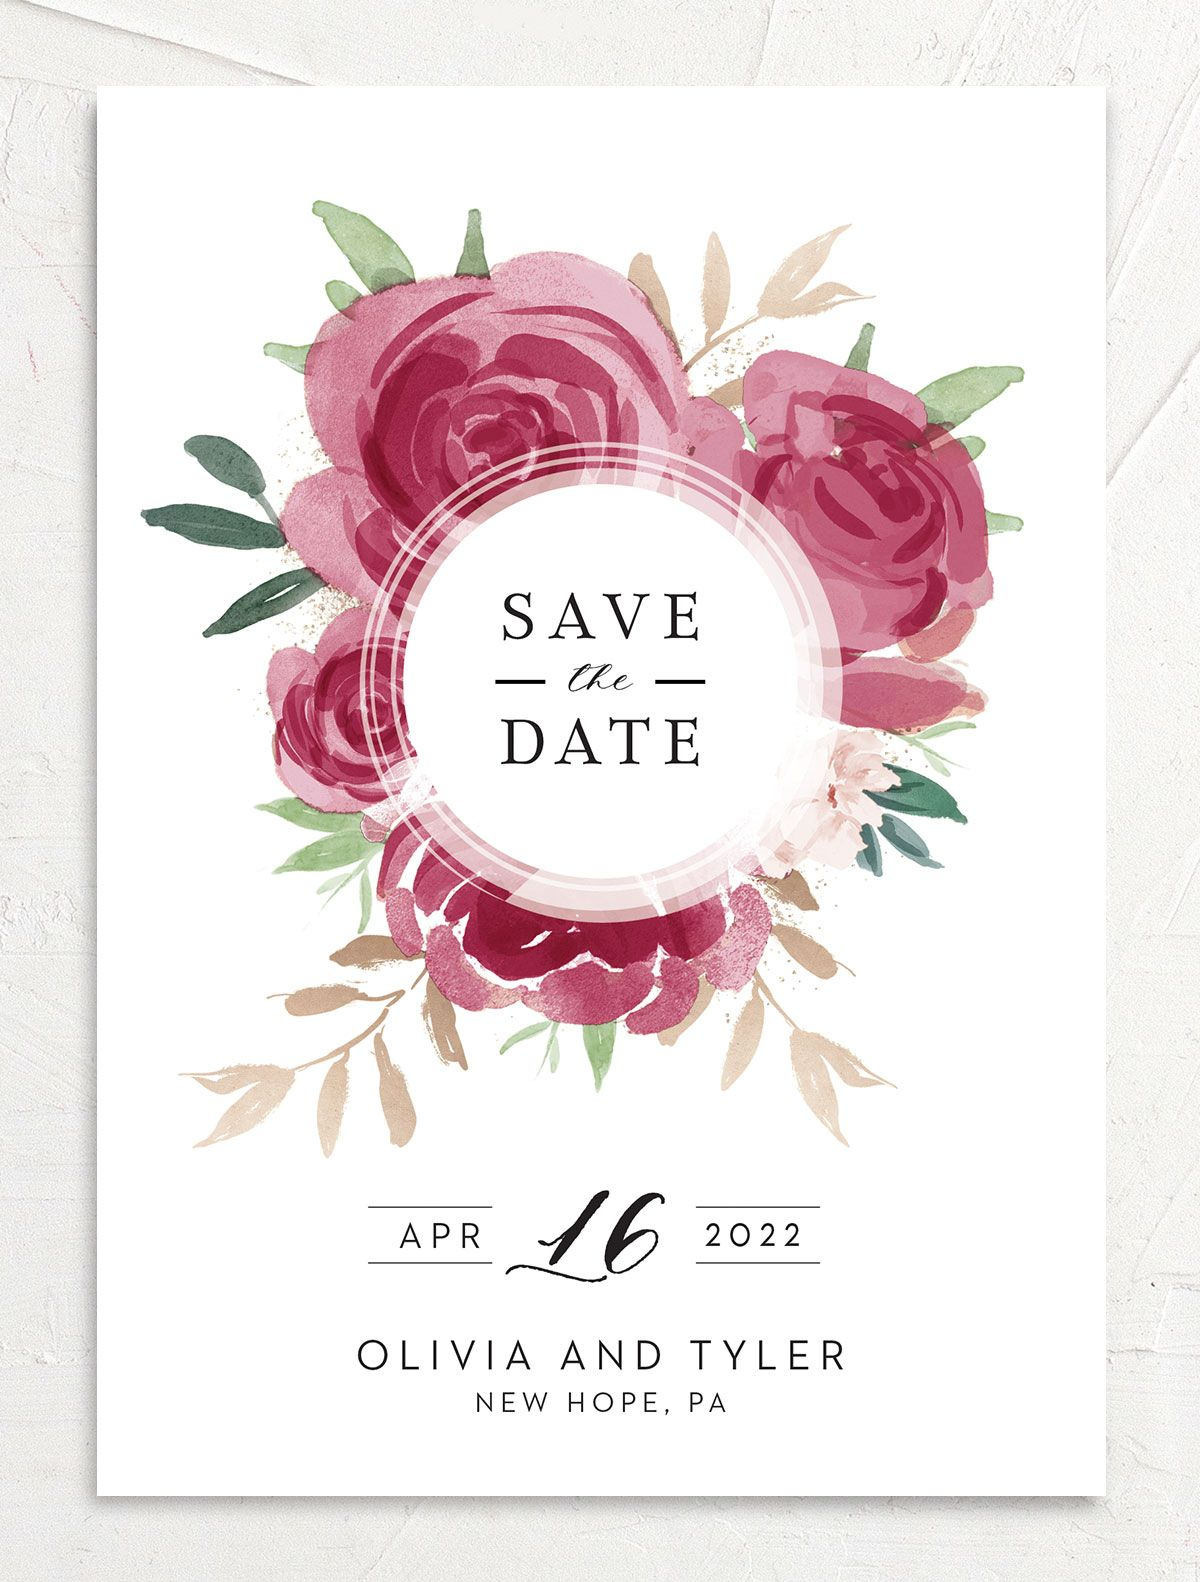 Floral Bouquet wedding save the date front burgundy